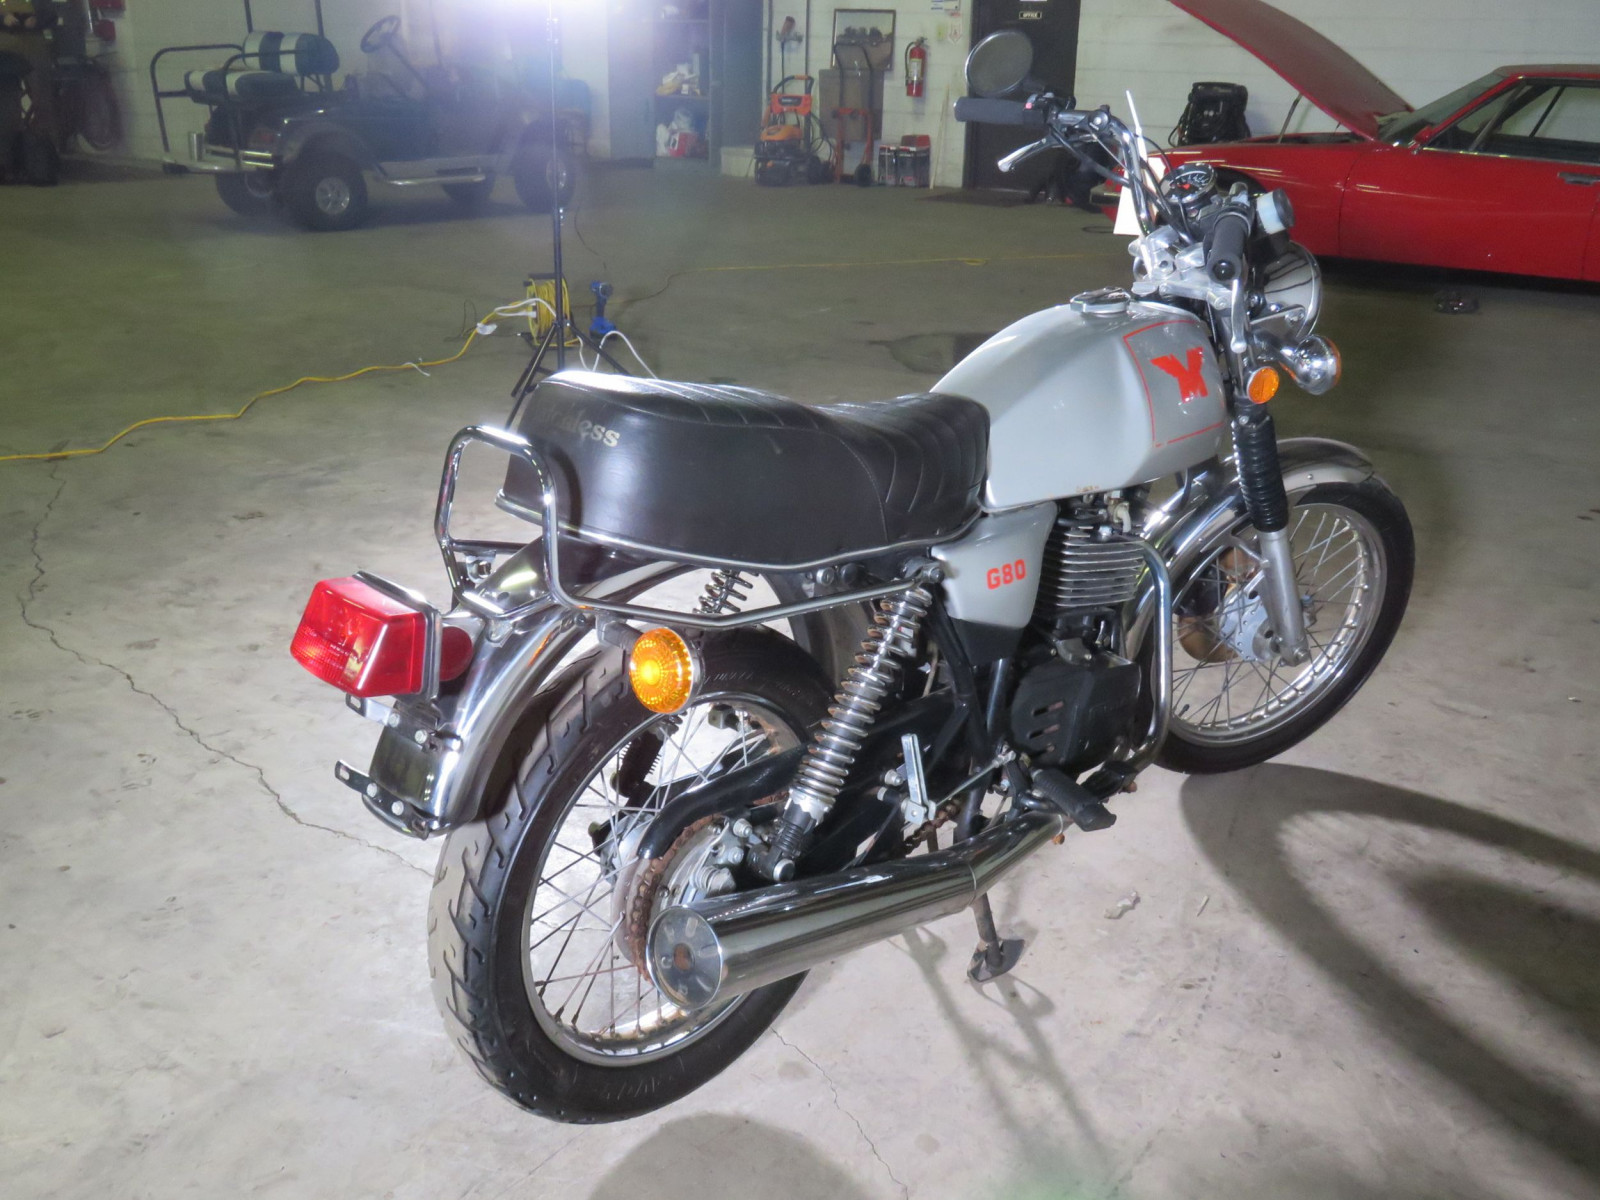 Rare 1988 Matchless G80 Rotax Power Motorcycle - Image 4